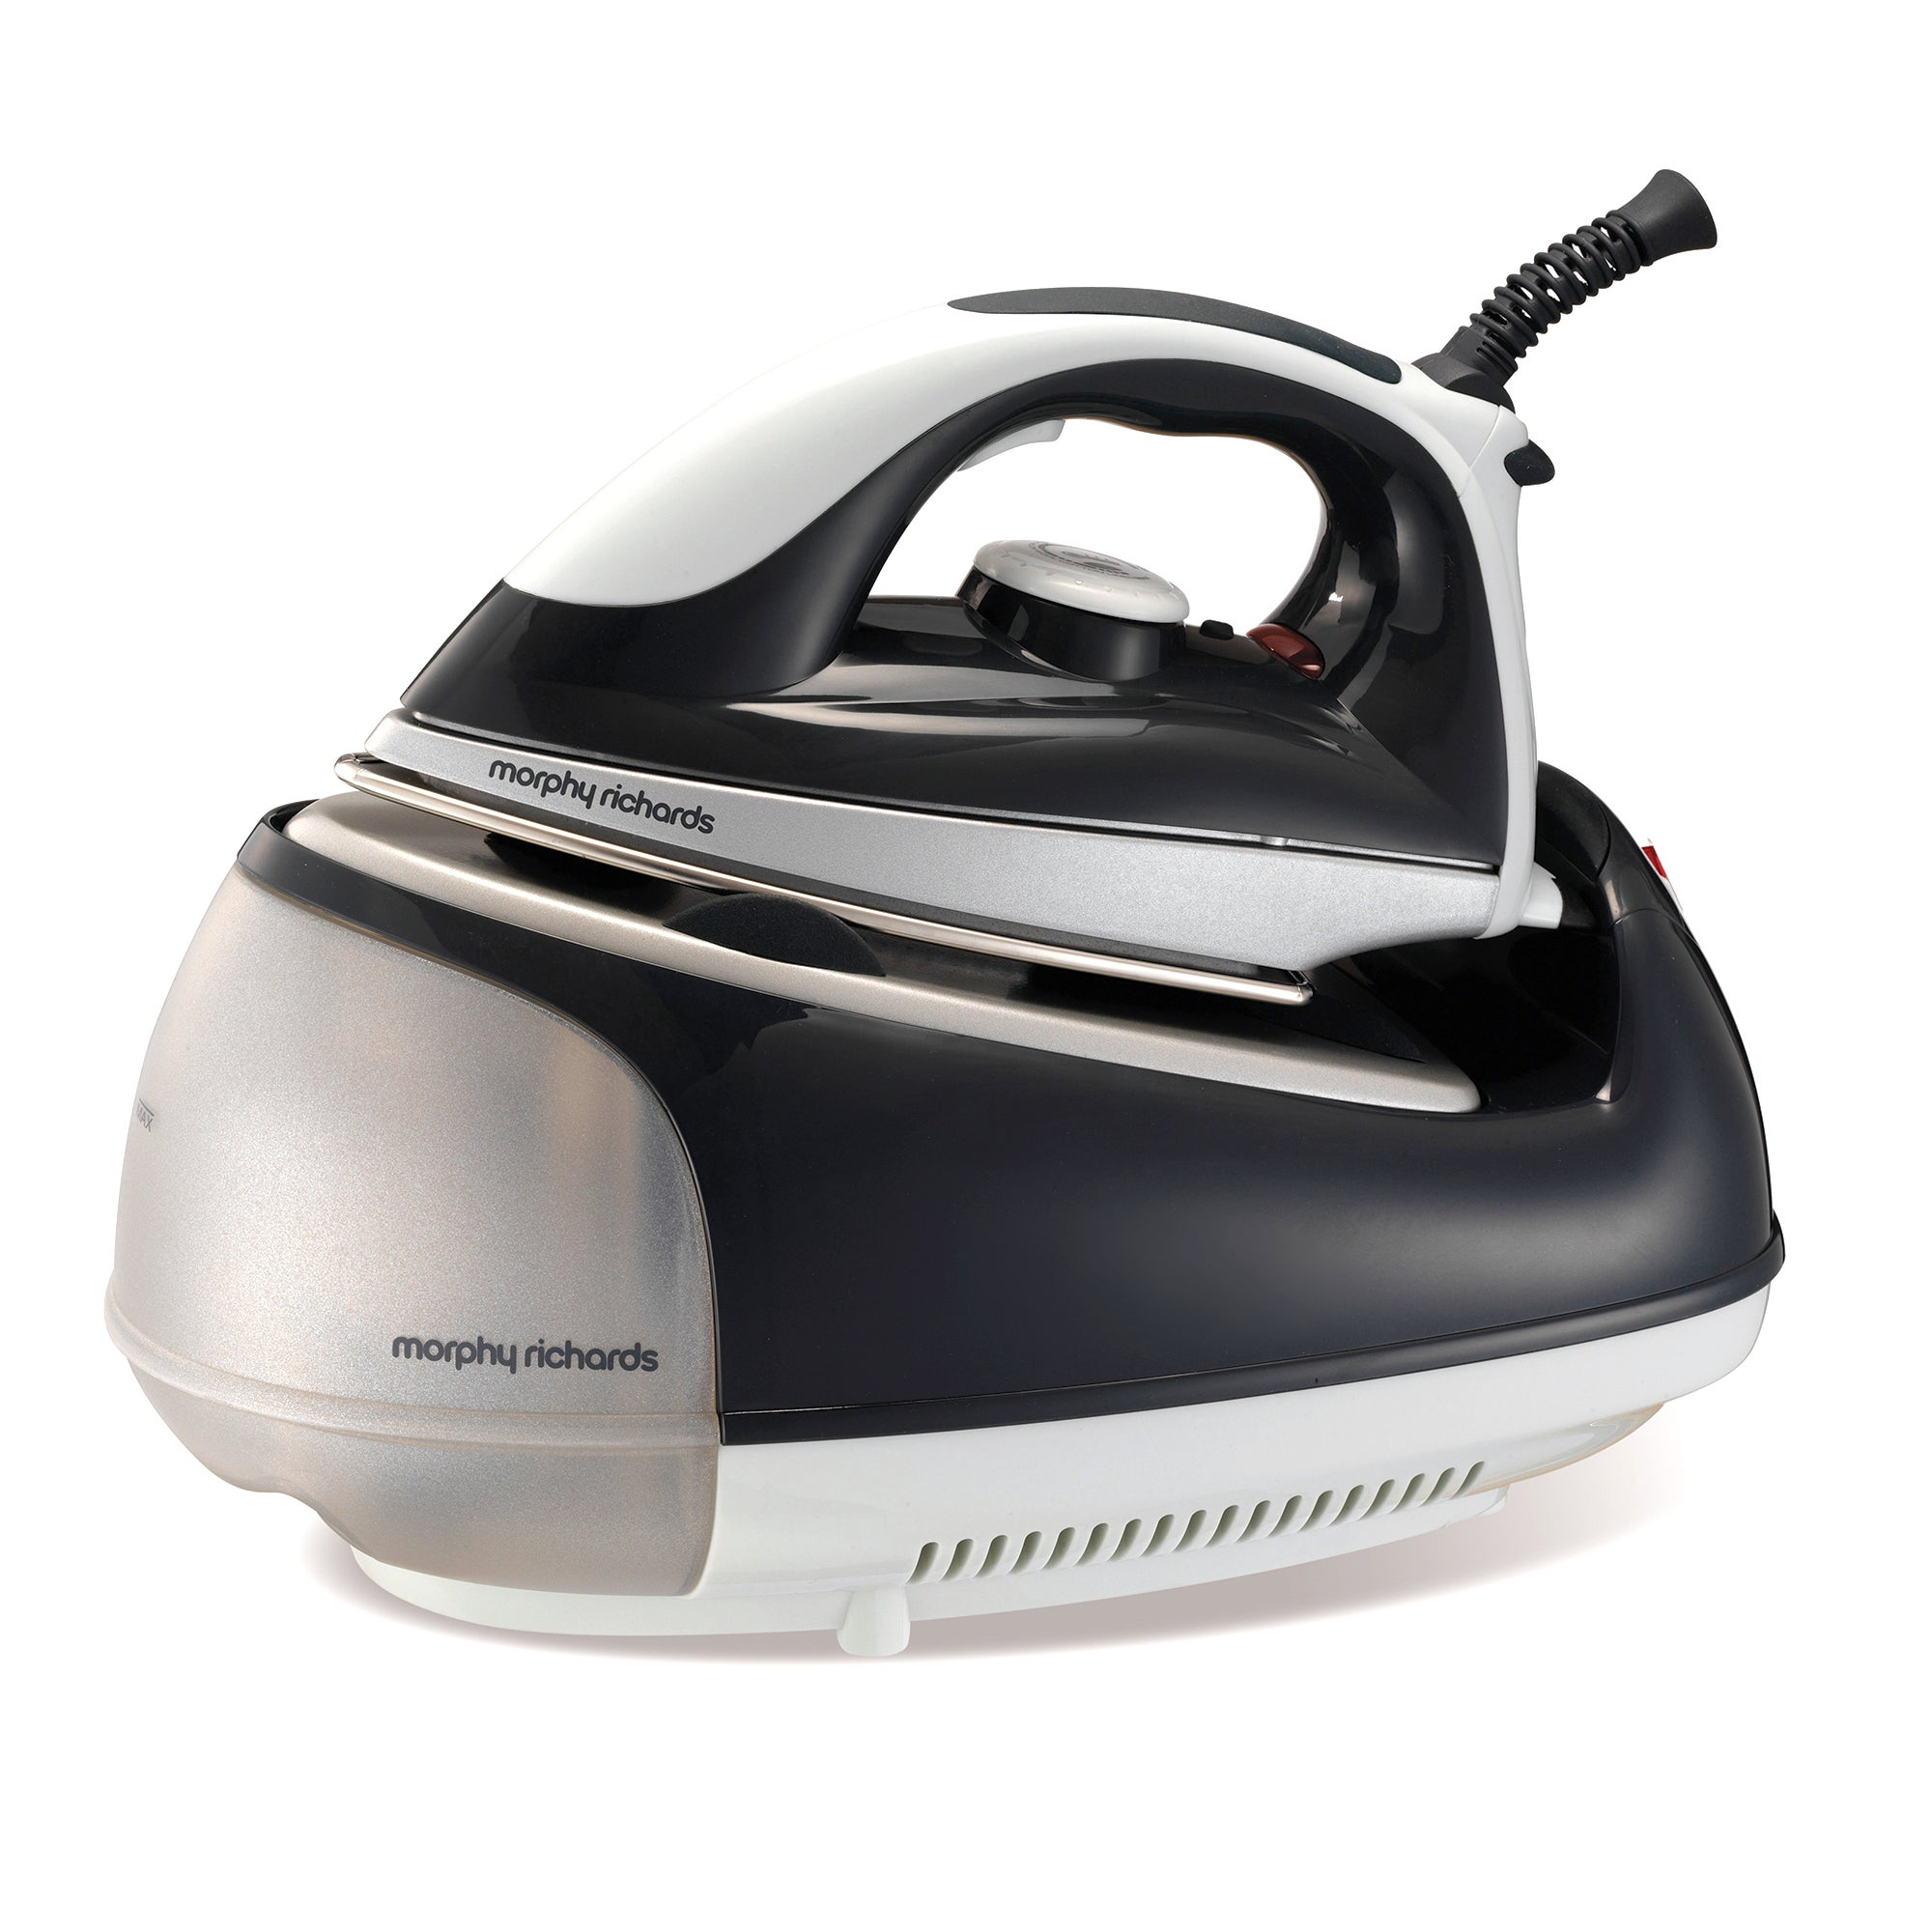 Morphy Richards Black Jet Stream Steam Generator Iron